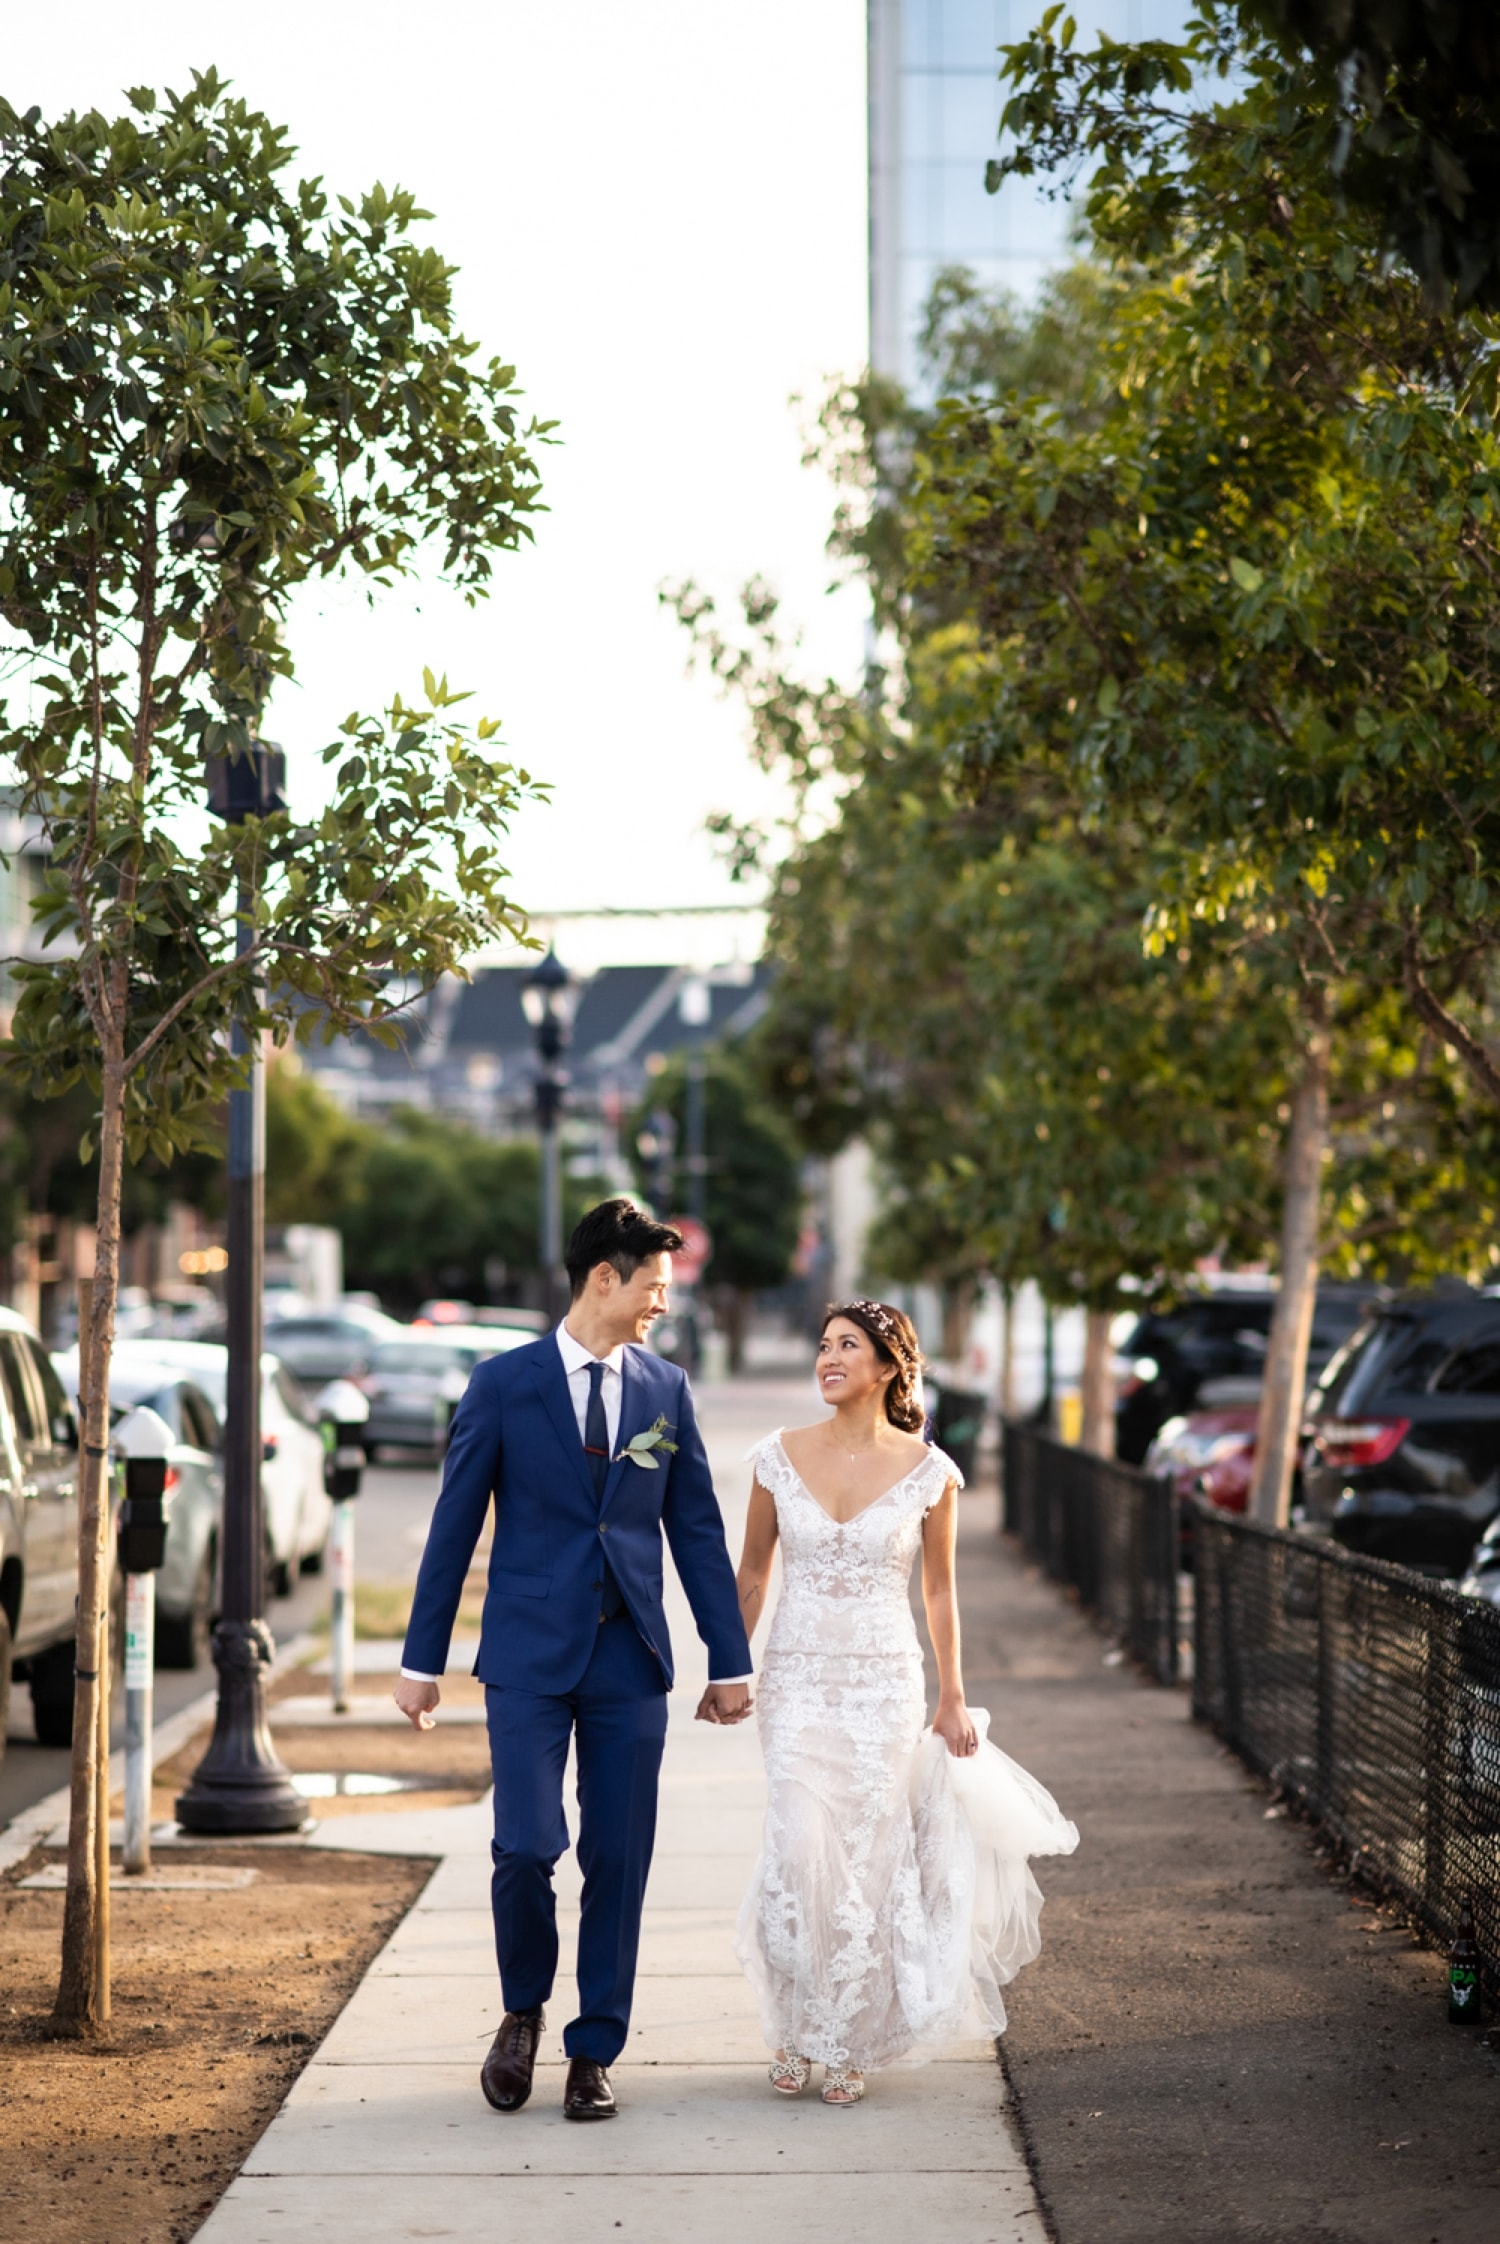 Bride and groom walking down the street in downtown San Diego.